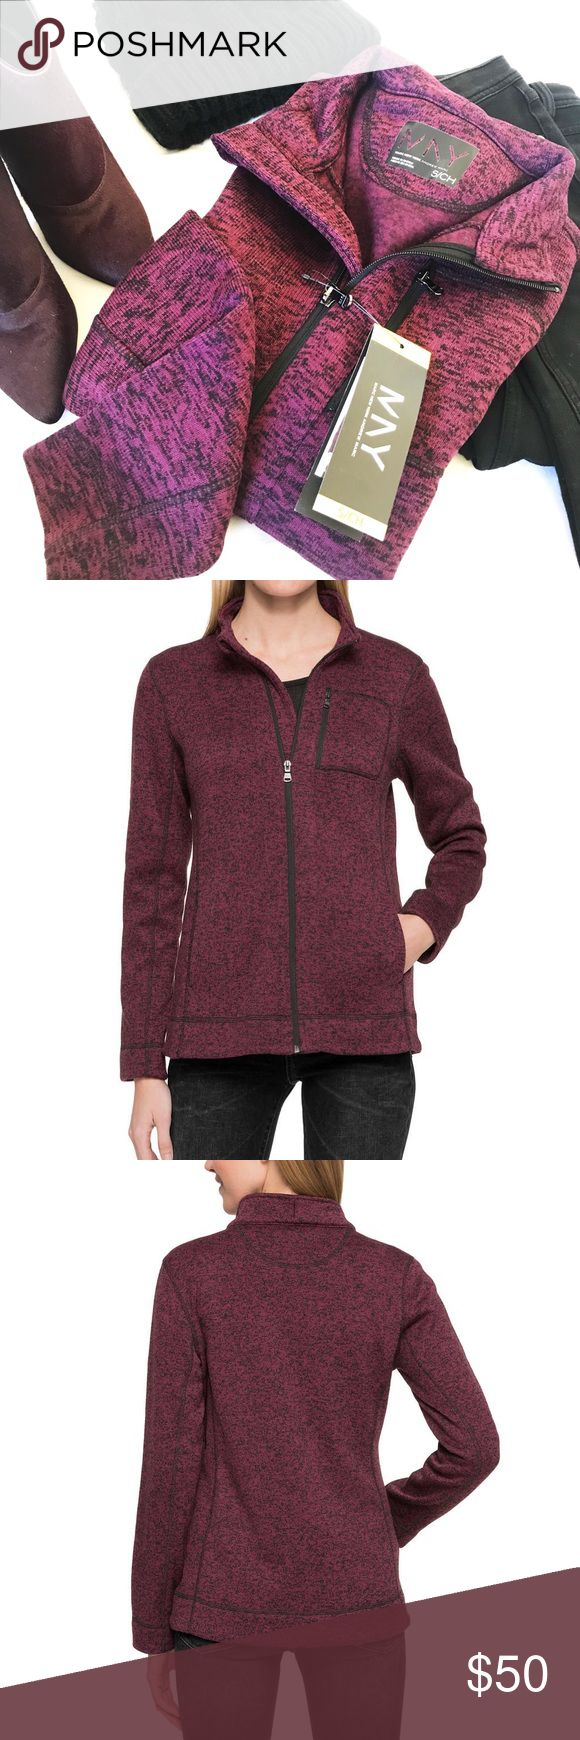 MARC NY ANDREW MARC FULL ZIP JACKET Marc NY Andrew Marc full zip jacket with chest pocket and 2 additional pockets on sides. Perfect jacket for fall and winter. Collar can fold or zip all the way up. Lightweight, yet thick enough to keep u warm. Andrew Marc Jackets & Coats